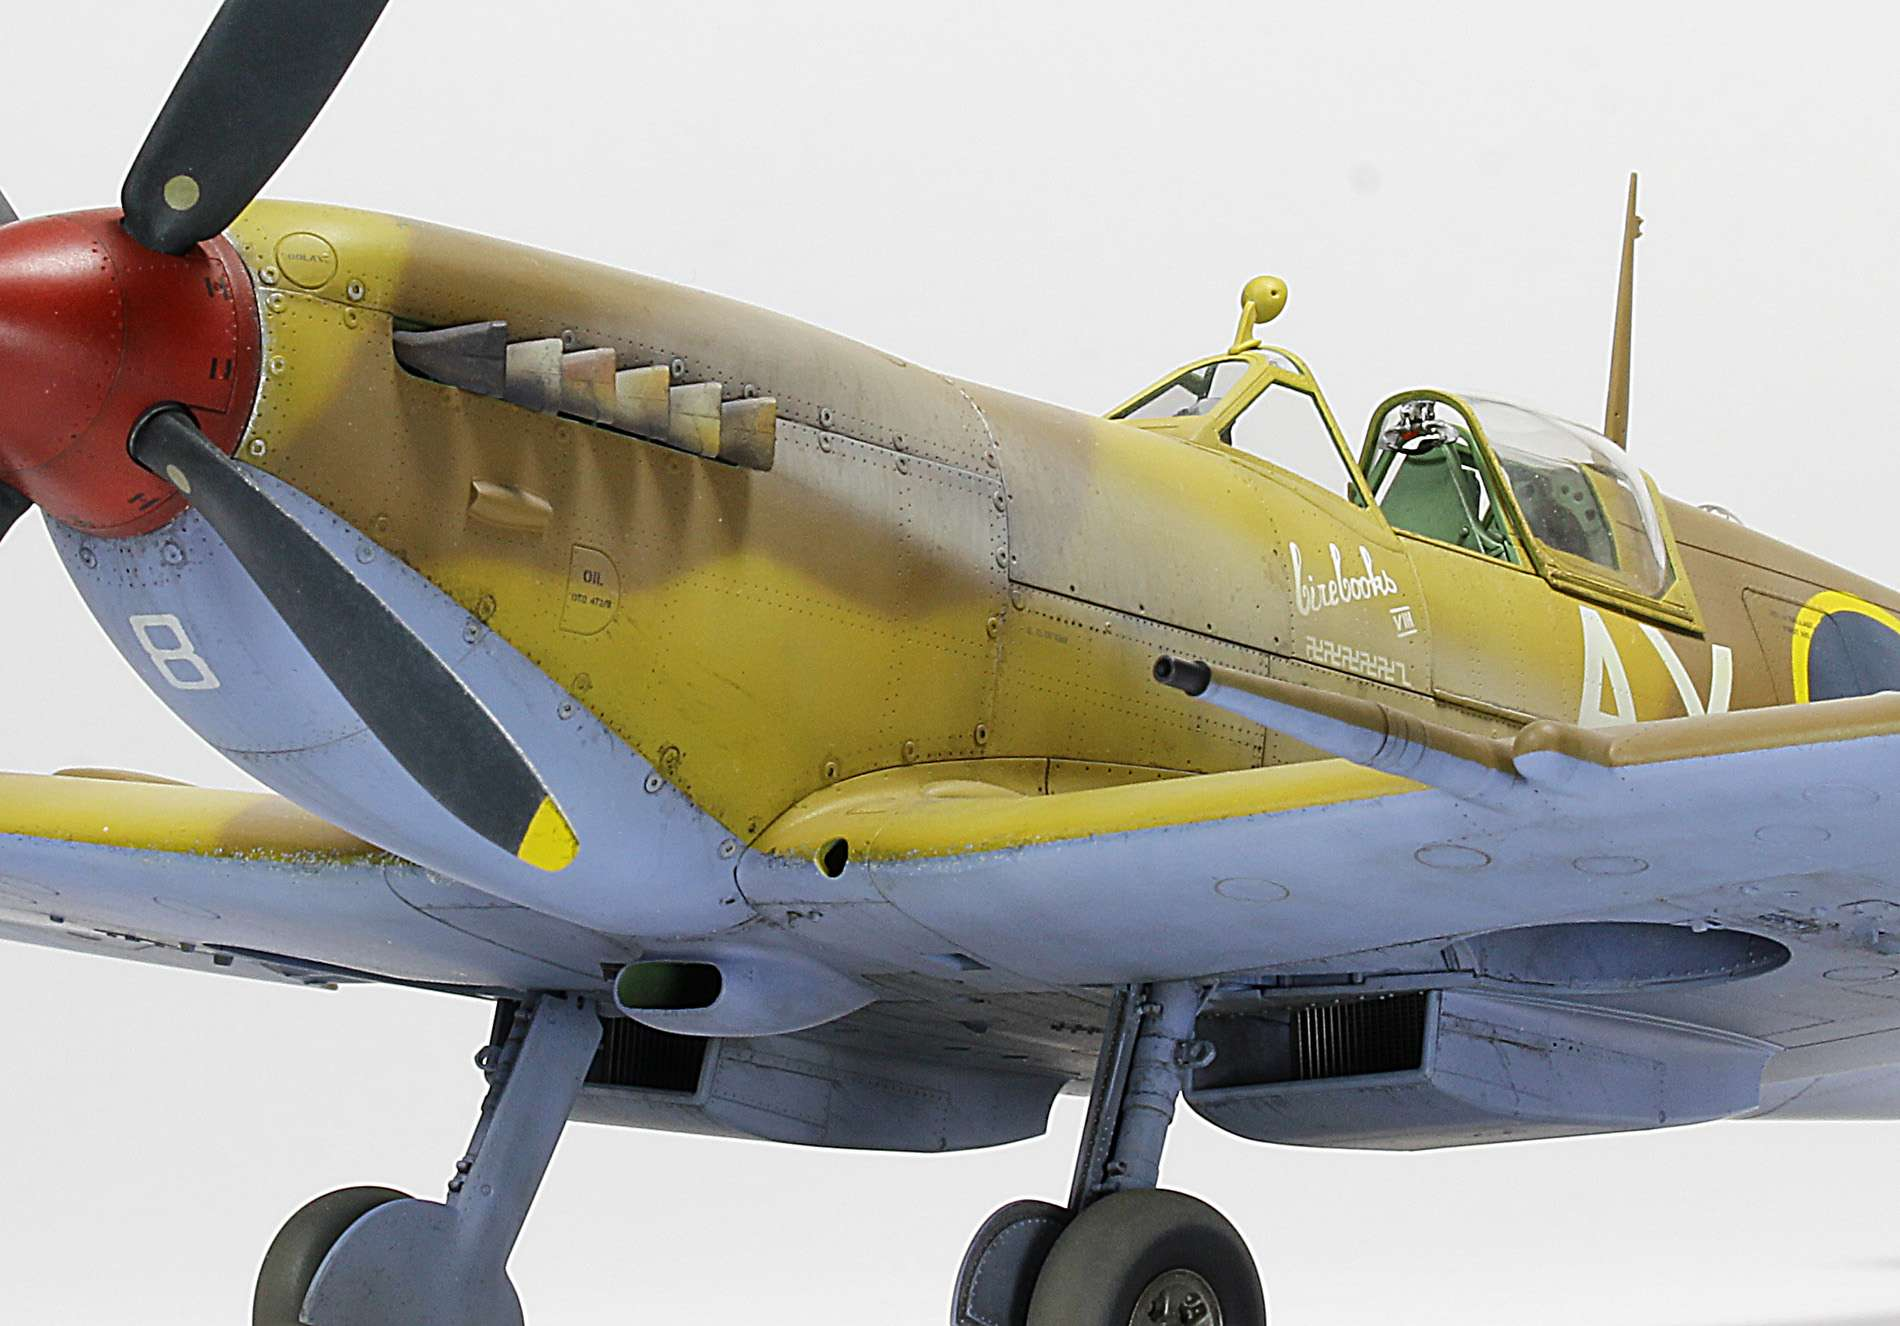 The SAAF Forum • View topic - Superb model of CireCooks